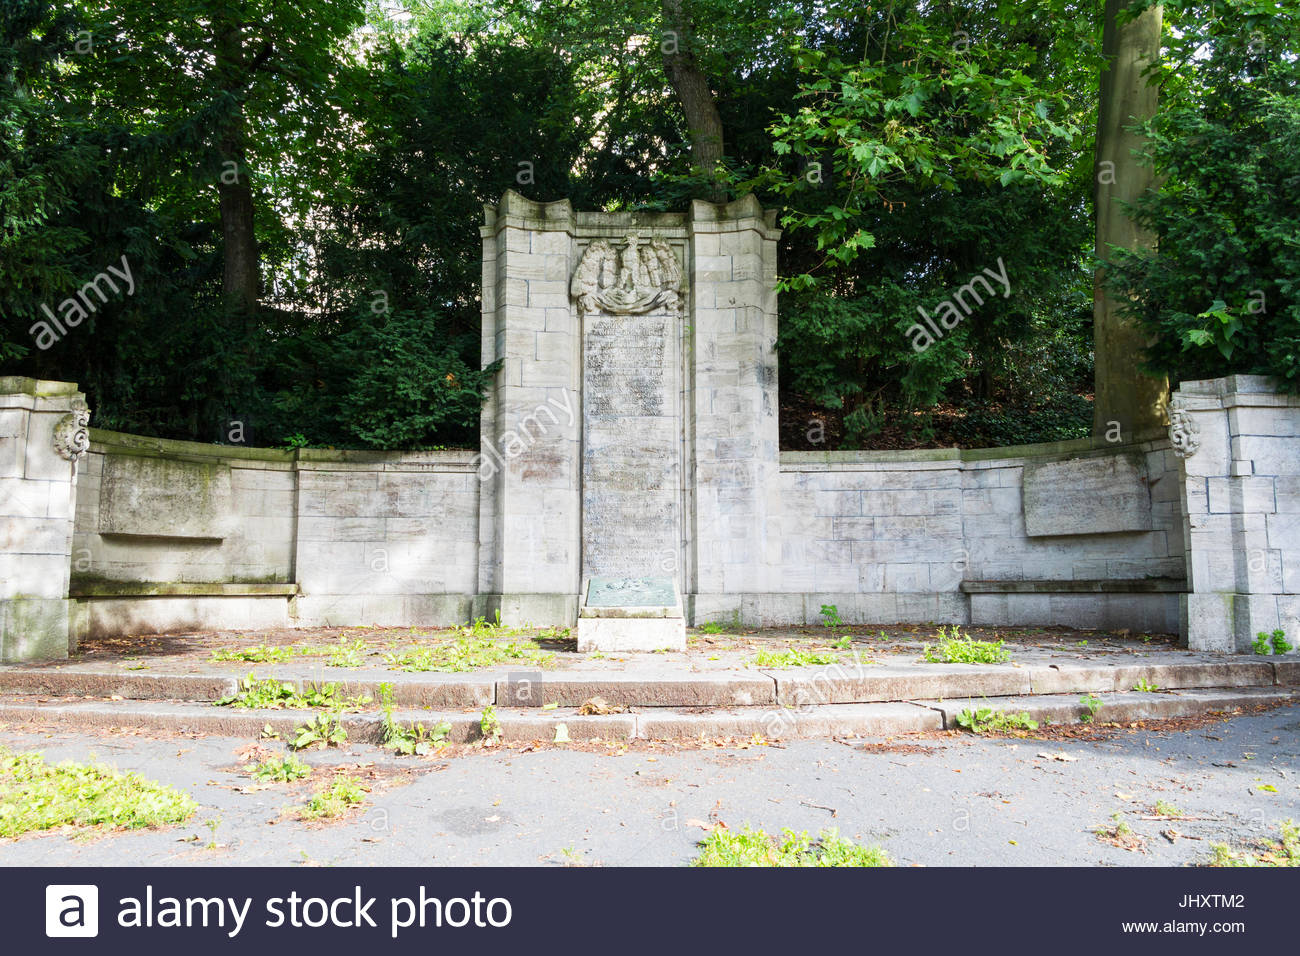 German Memorial to killed soldiers in prussian german war 1864-1866, french german war 1870-1871 and first world - Stock Image